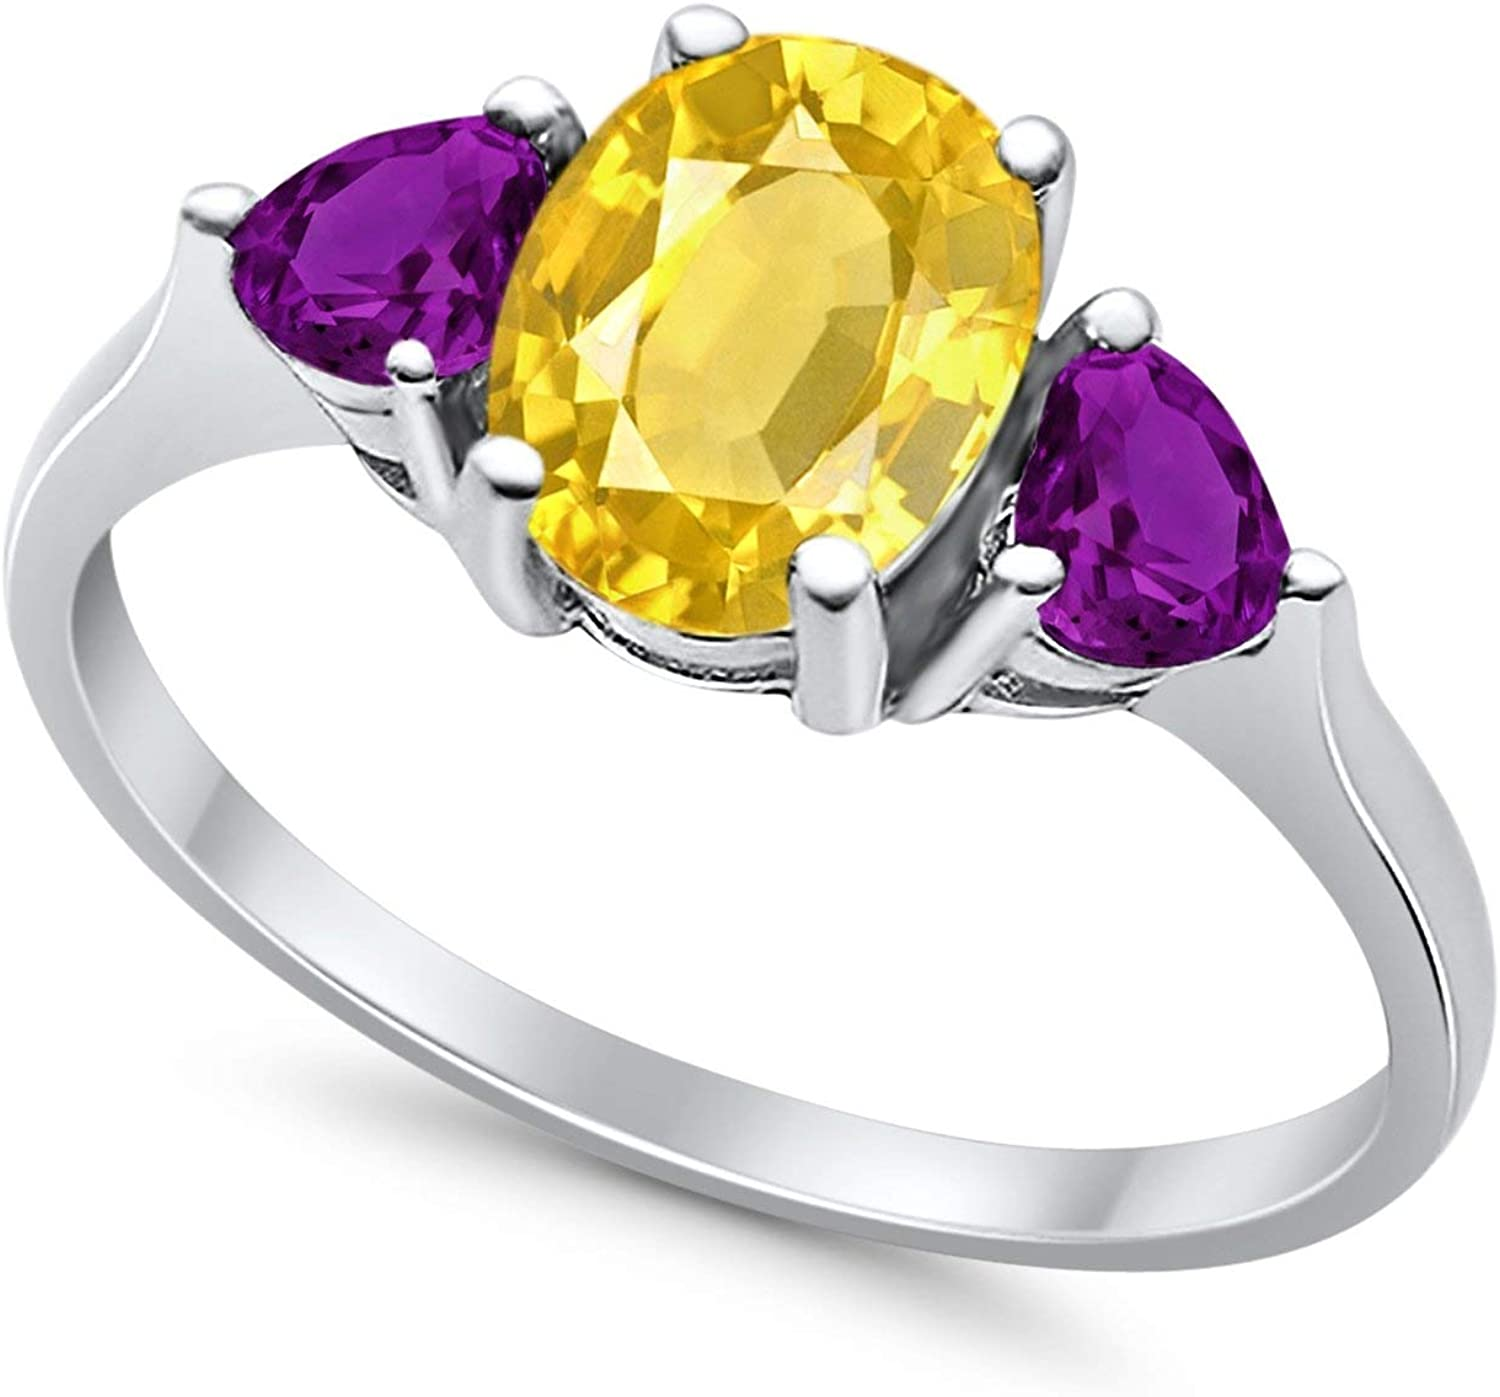 Blue Apple Co Fashion Promise Ring 3-Stone Oval /& Heart Simulated Amethyst CZ 925 Sterling Silver